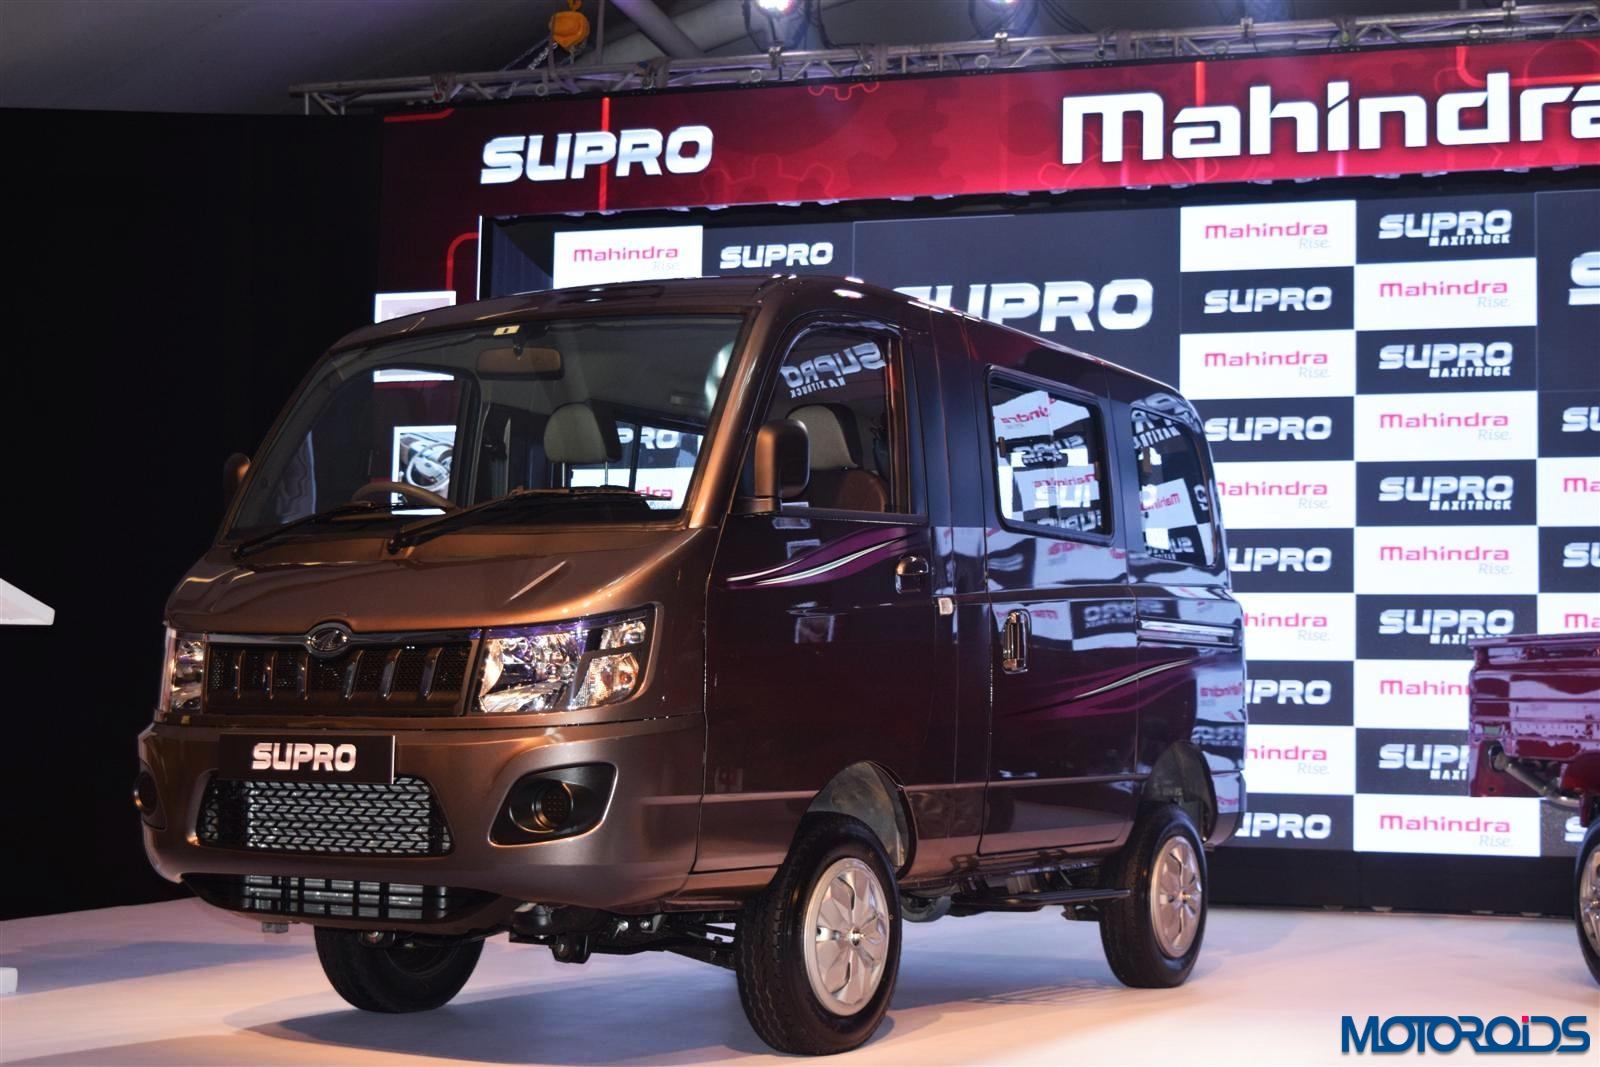 mahindra new car releaseMahindra launches Supro van and Minitruck for Rs 438  425 lakh